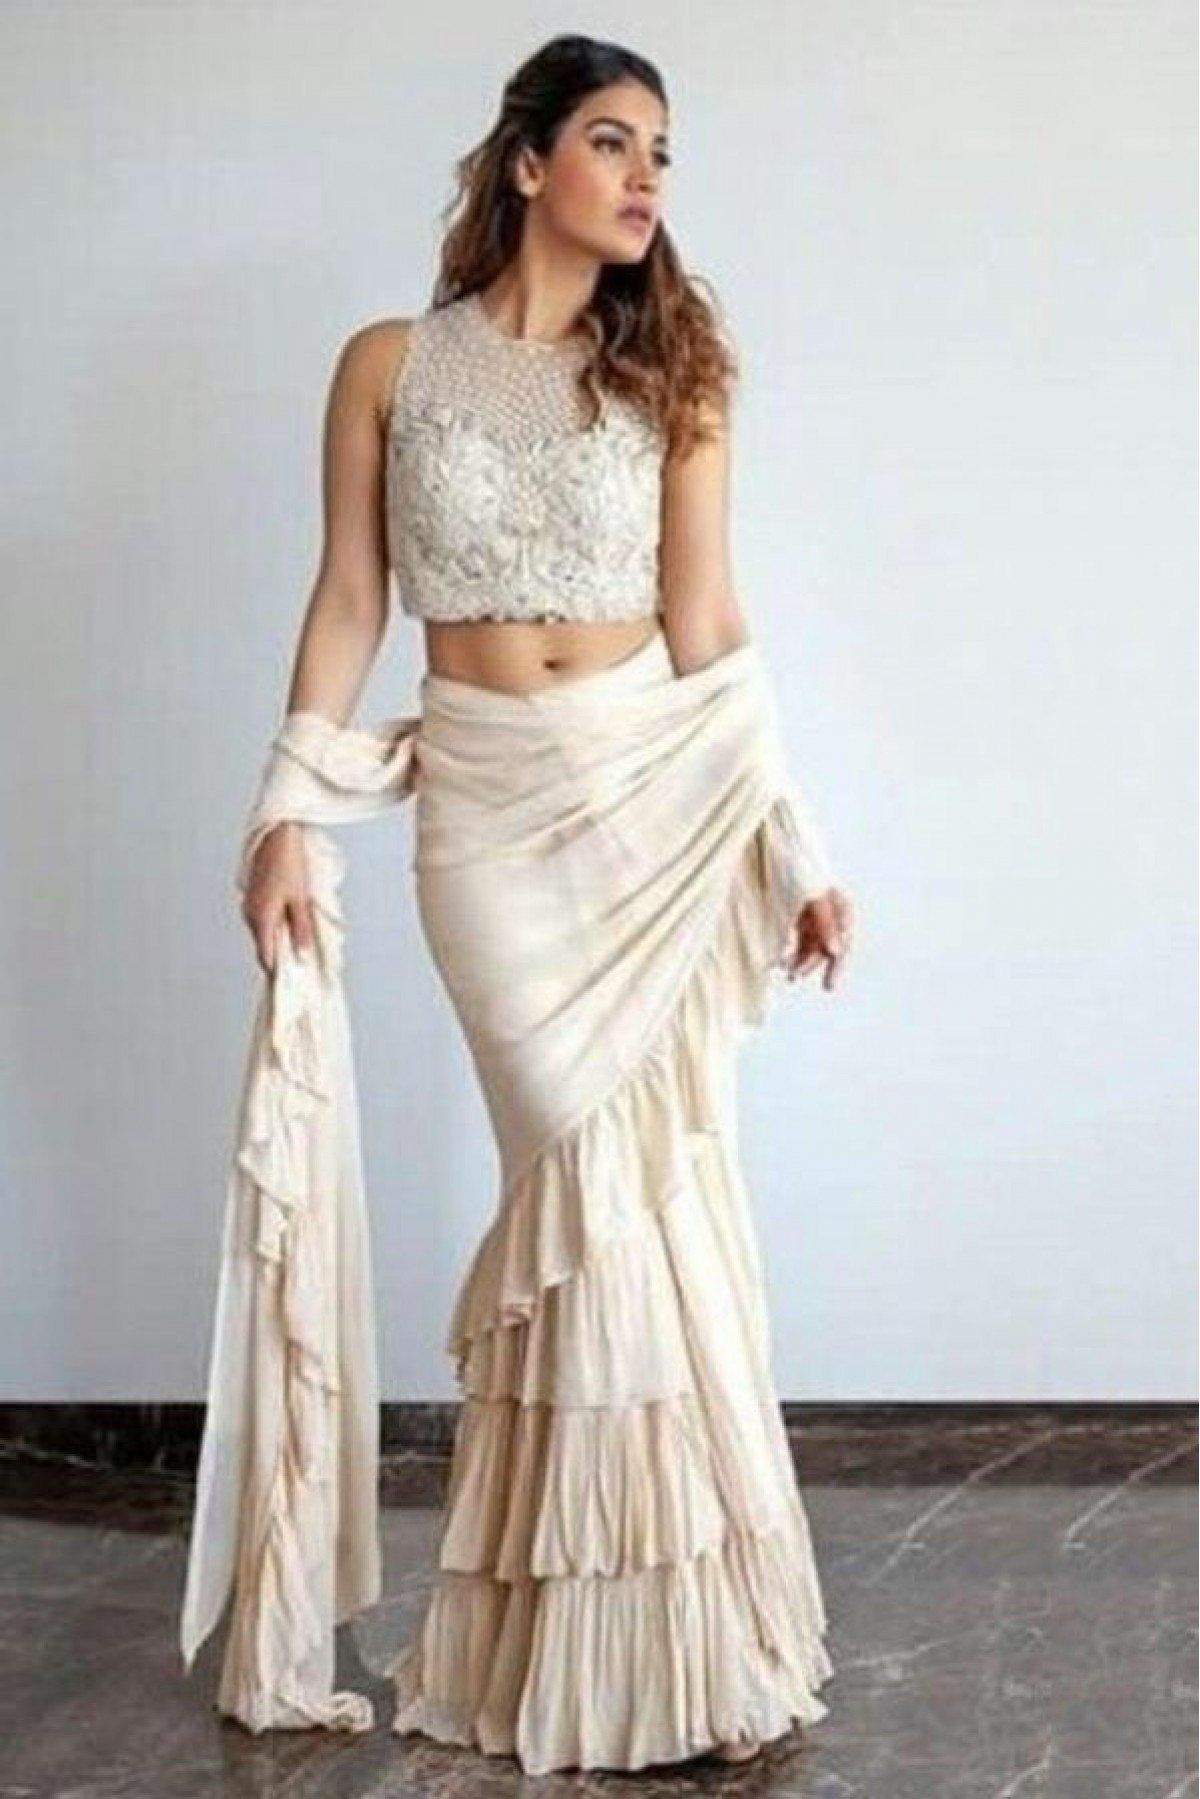 0d922e5e8eb Off White Colour 60 GM Georgette Fabric Saree Comes With Matching Blouse  Fabric. This Saree Is Crafted With Ruffle. This Saree Comes With Unstitched  Blouse ...